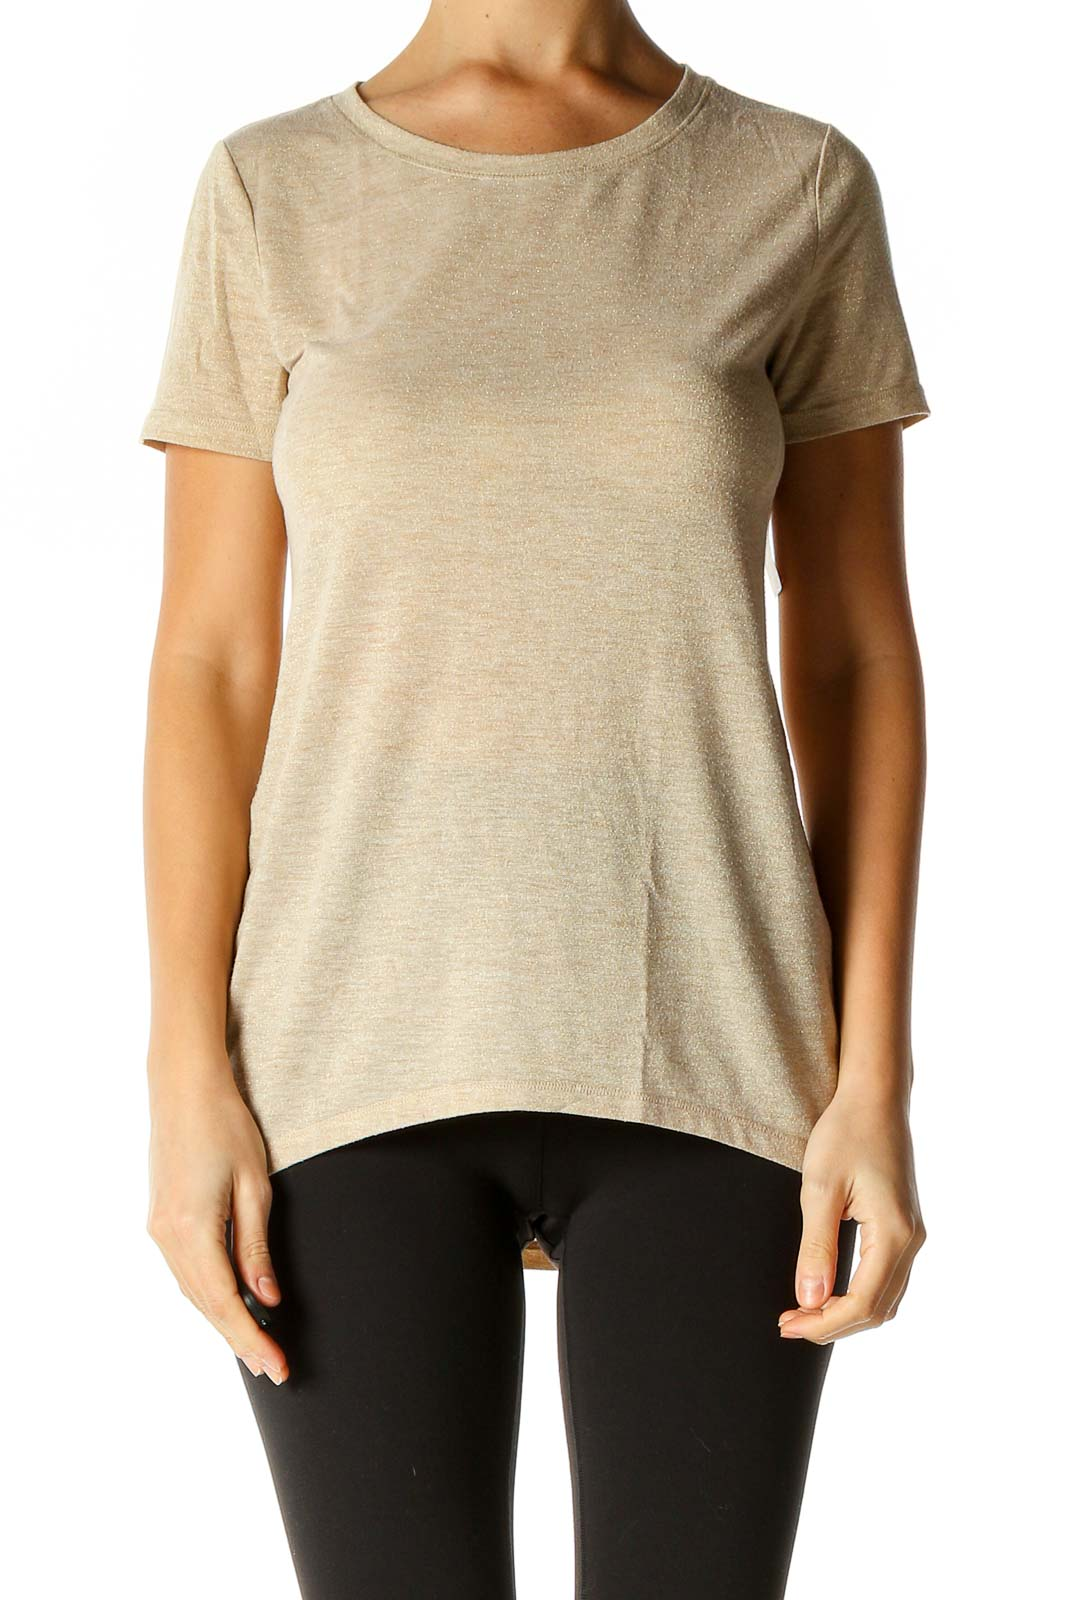 Beige Textured Casual T-Shirt Front